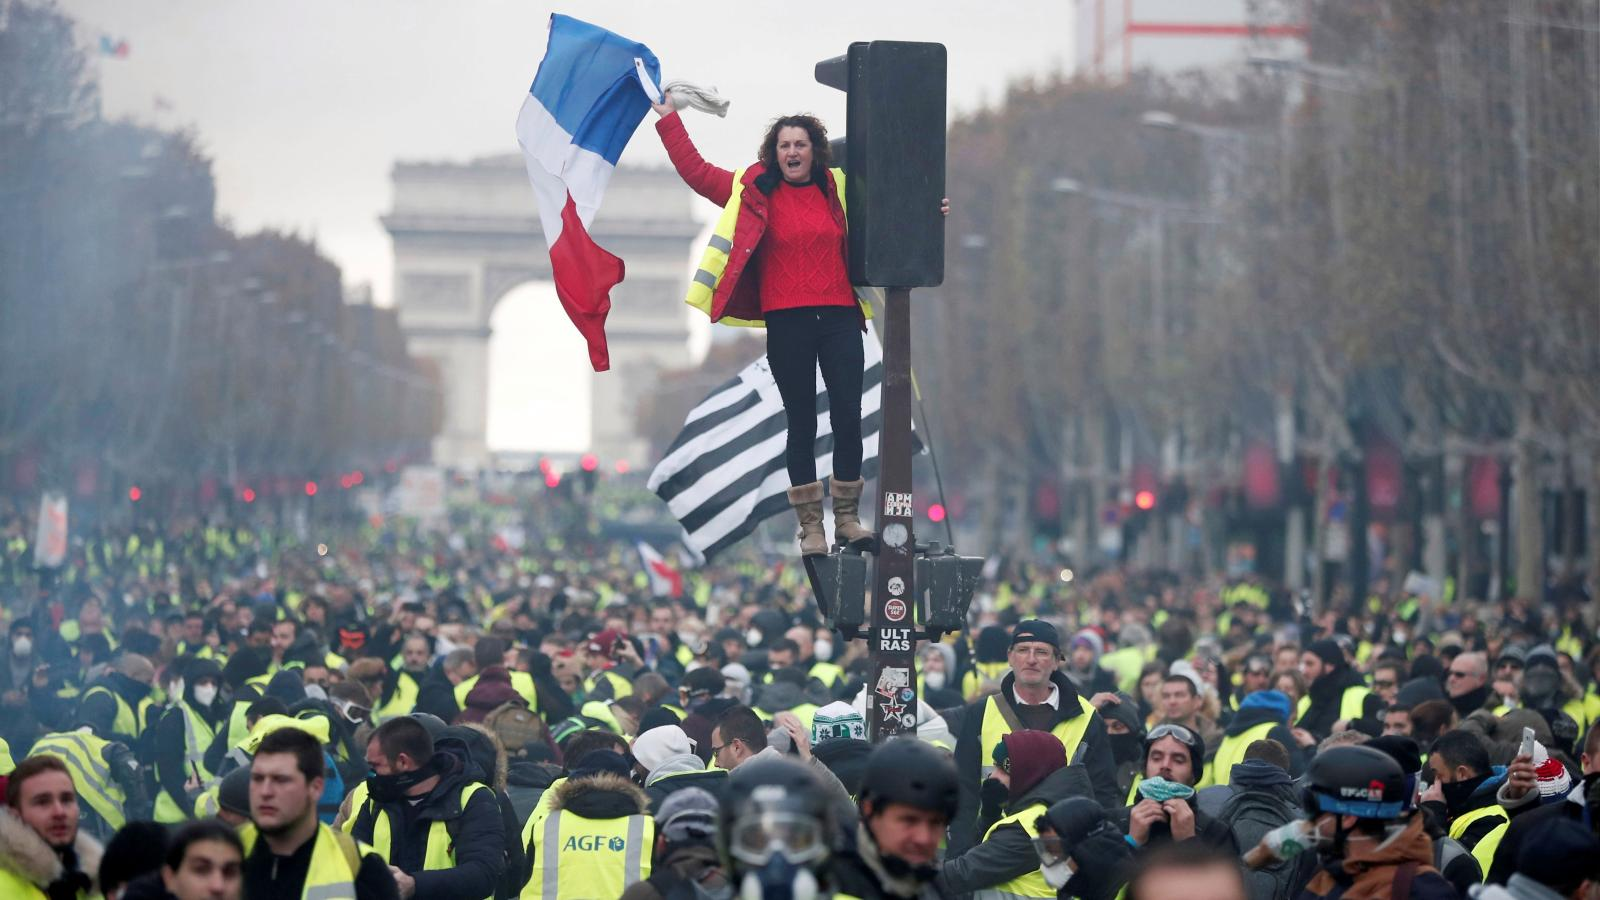 US workers would envy France's yellow vest protesters